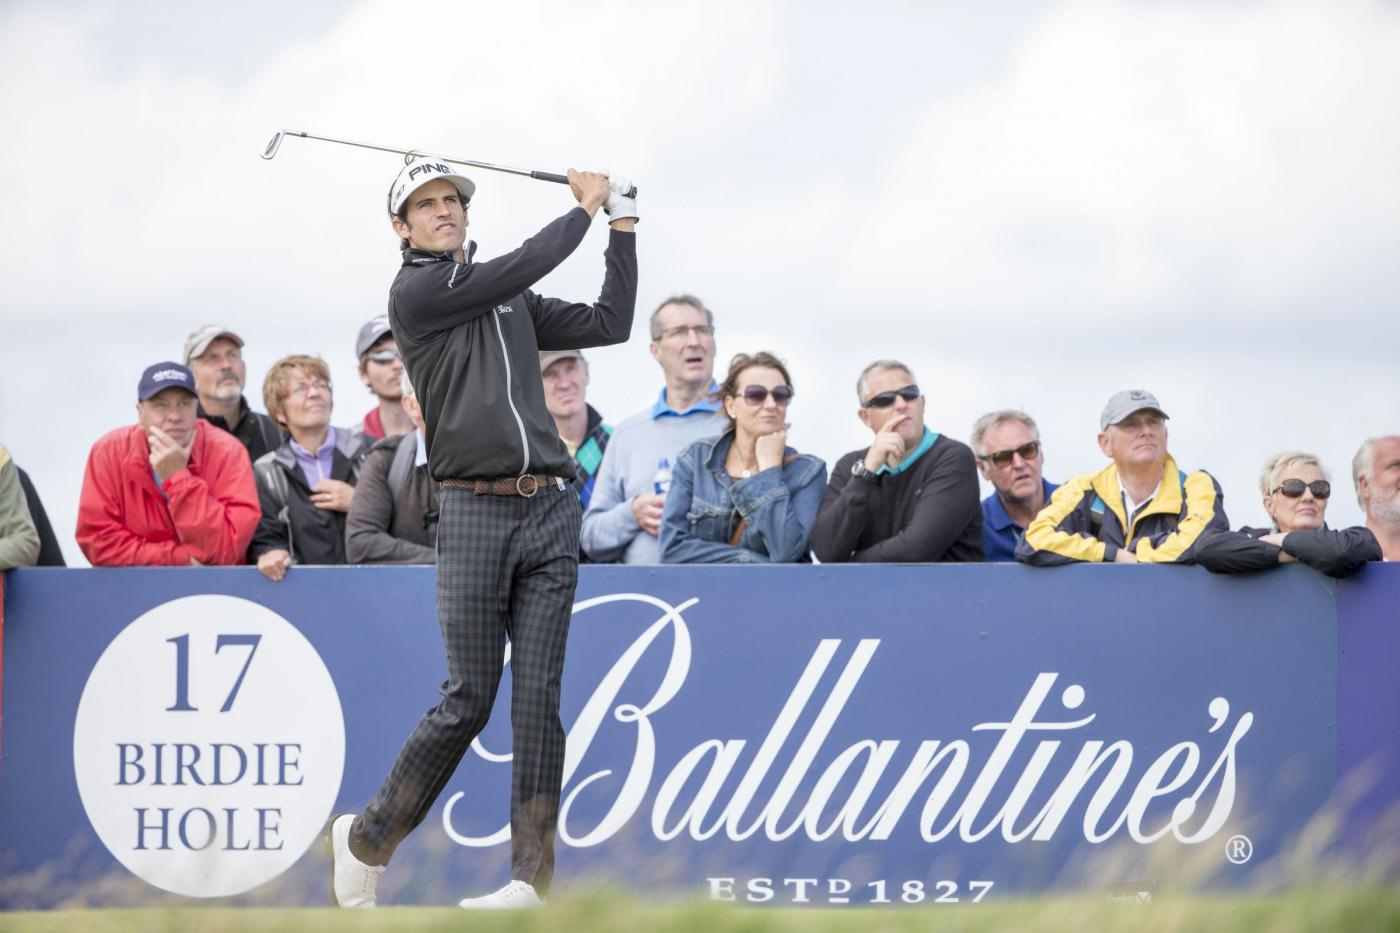 Spain's Pedro Oriol tees off at the 17th hole during day three of the Scottish Open at Gullane Golf Club, East Lothian. PRESS ASSOCIATION Photo. Picture date: Saturday July 11, 2015. See PA story GOLF Gullane. Photo credit should read: Kenny Smith/PA Wire. RESTRICTIONS: Editorial use only. No commercial use. No false commercial association. No video emulation. No manipulation of images.